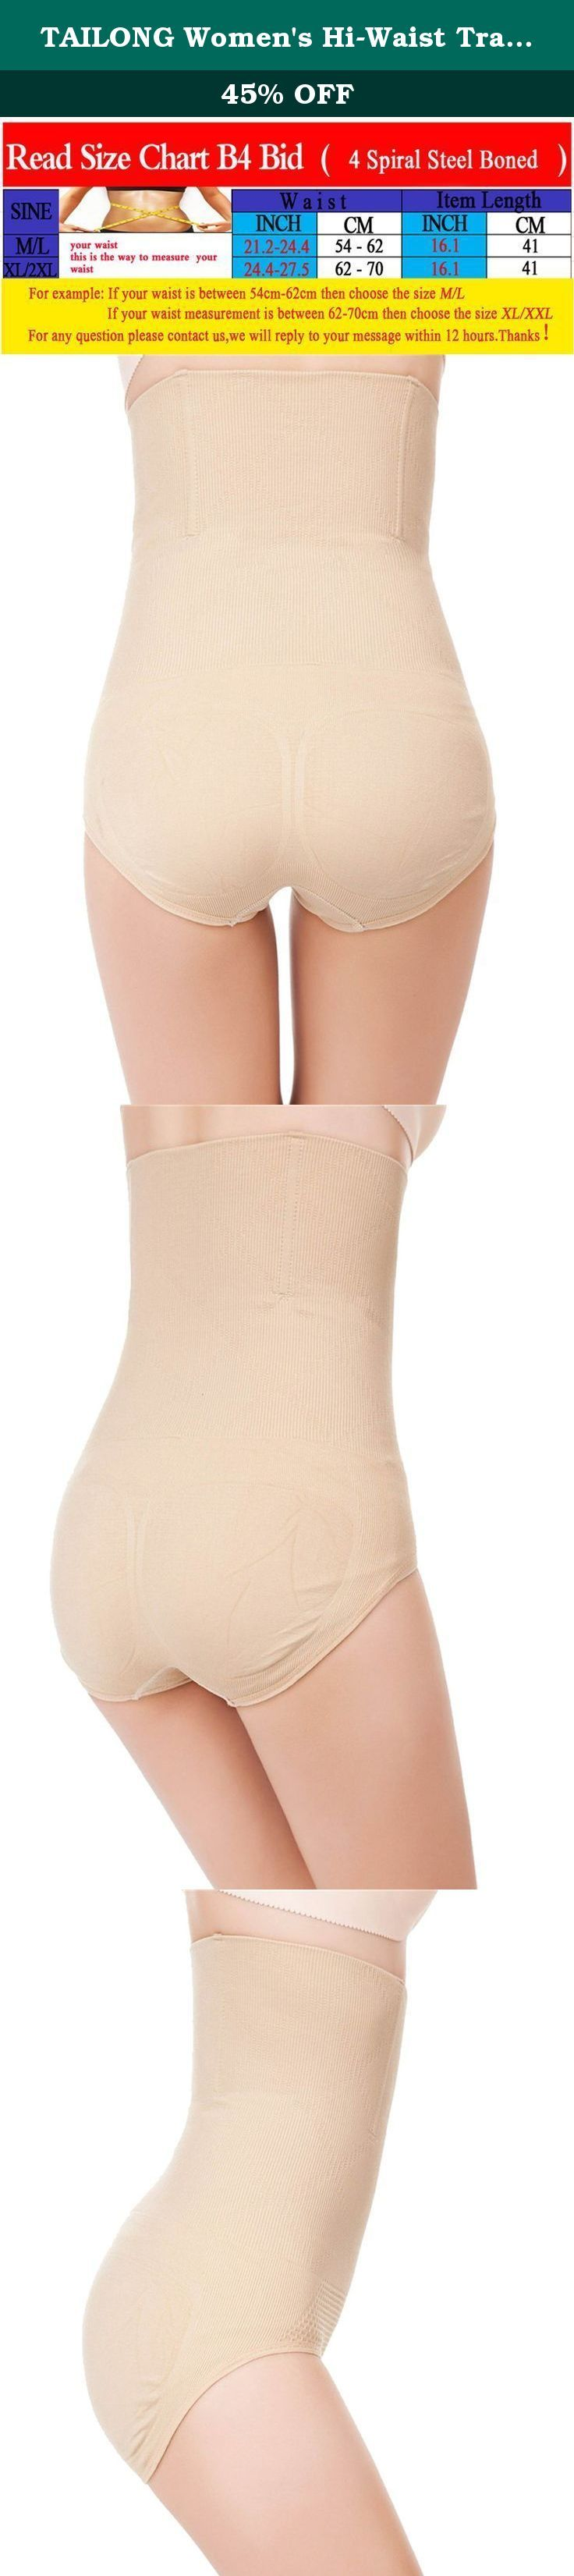 TAILONG Women's Hi-Waist Trainer Cincher Corset Girdle Underbust Seamless Shaper (M/L, Beige). This is a Magical waist trainer,many people has witness the miracle. Once you put the waist trainer on,the hourglass waist will appear.That is the miracle of our waist trainer. Help you to weight loss the fat in the tummy and defines your waistline immediately. Supported by 4 spiral steel bones, strong material and principle to support your waistline. Comfortable cotton in the product.Comfy...